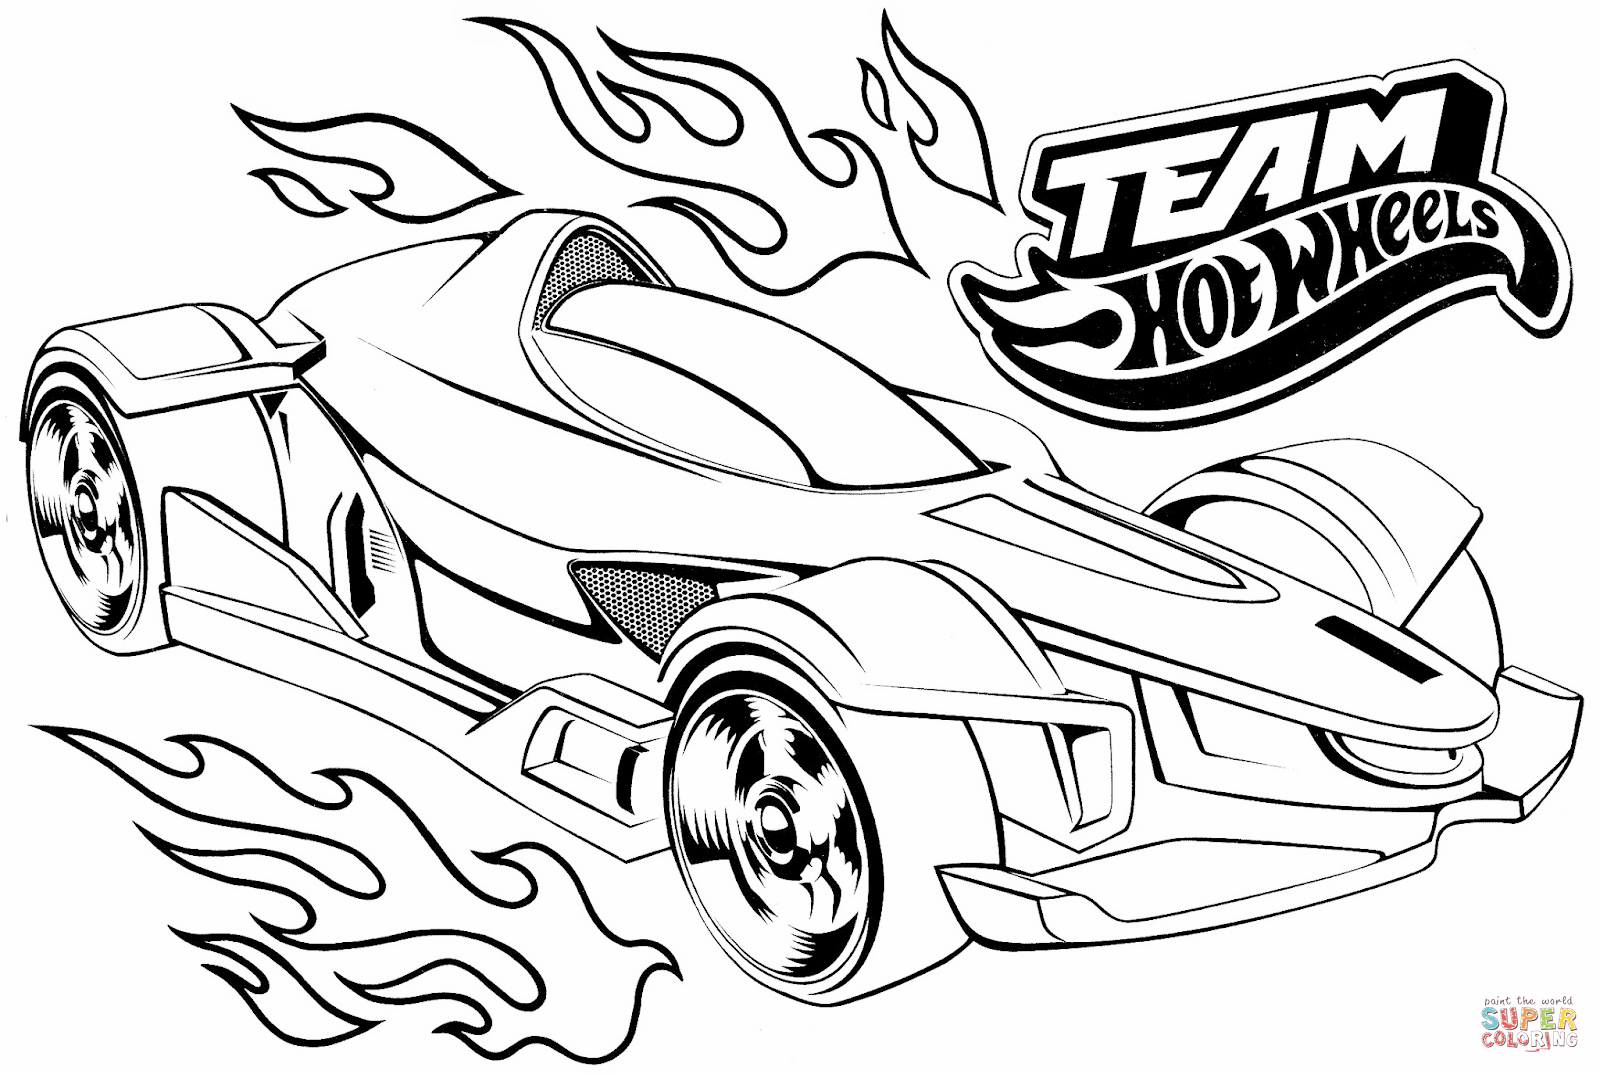 Click the team hot wheels coloring pages to view printable version or color it online compatible with ipad and android tablets